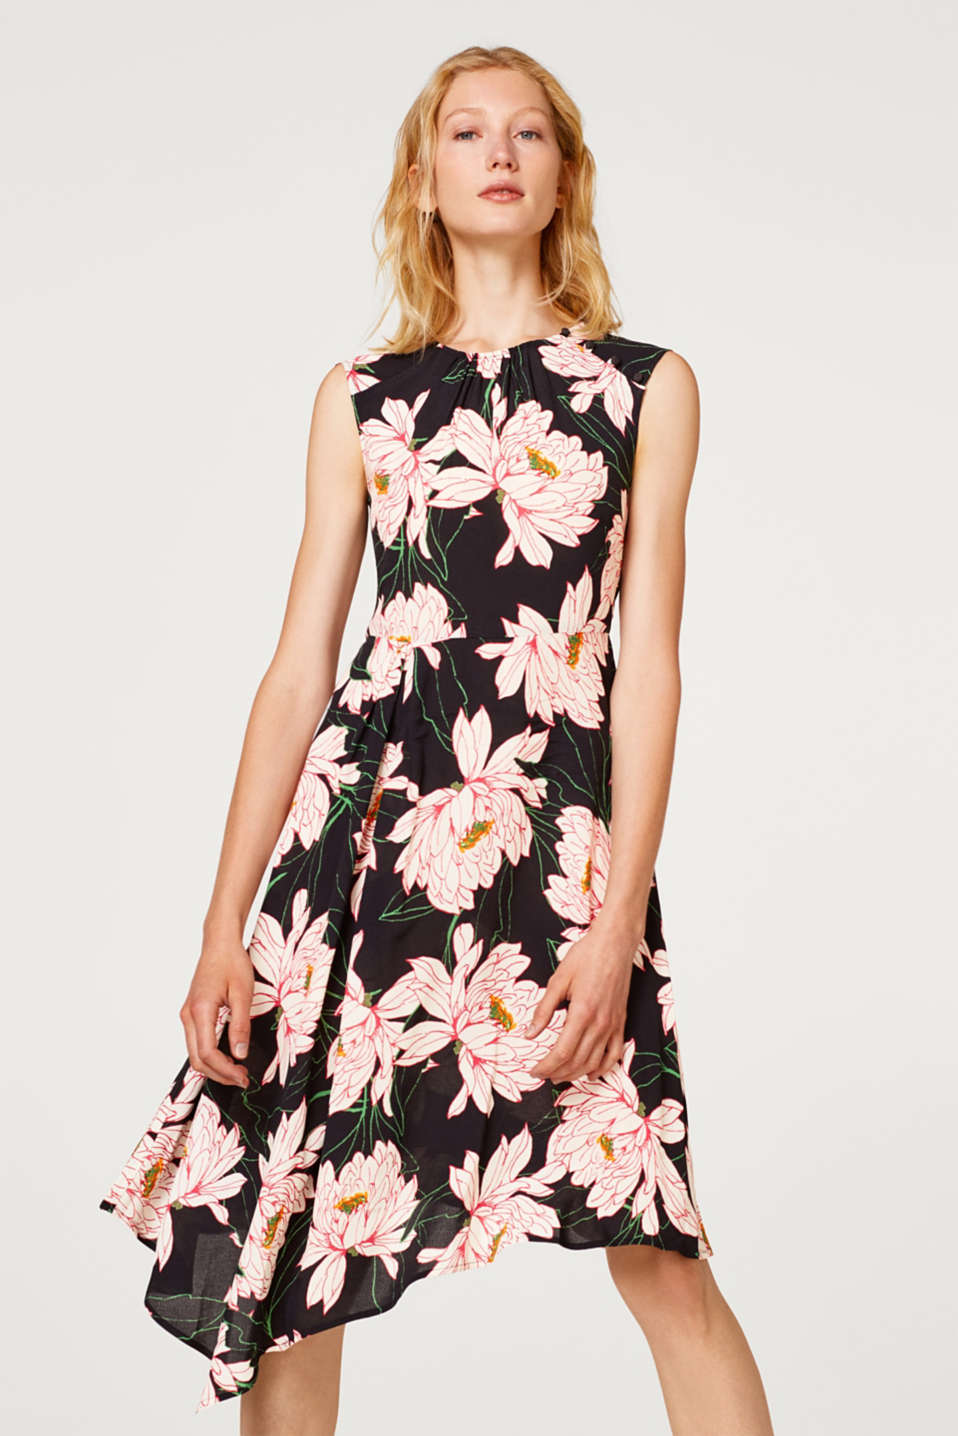 Esprit - Sleeveless crêpe dress with a floral print